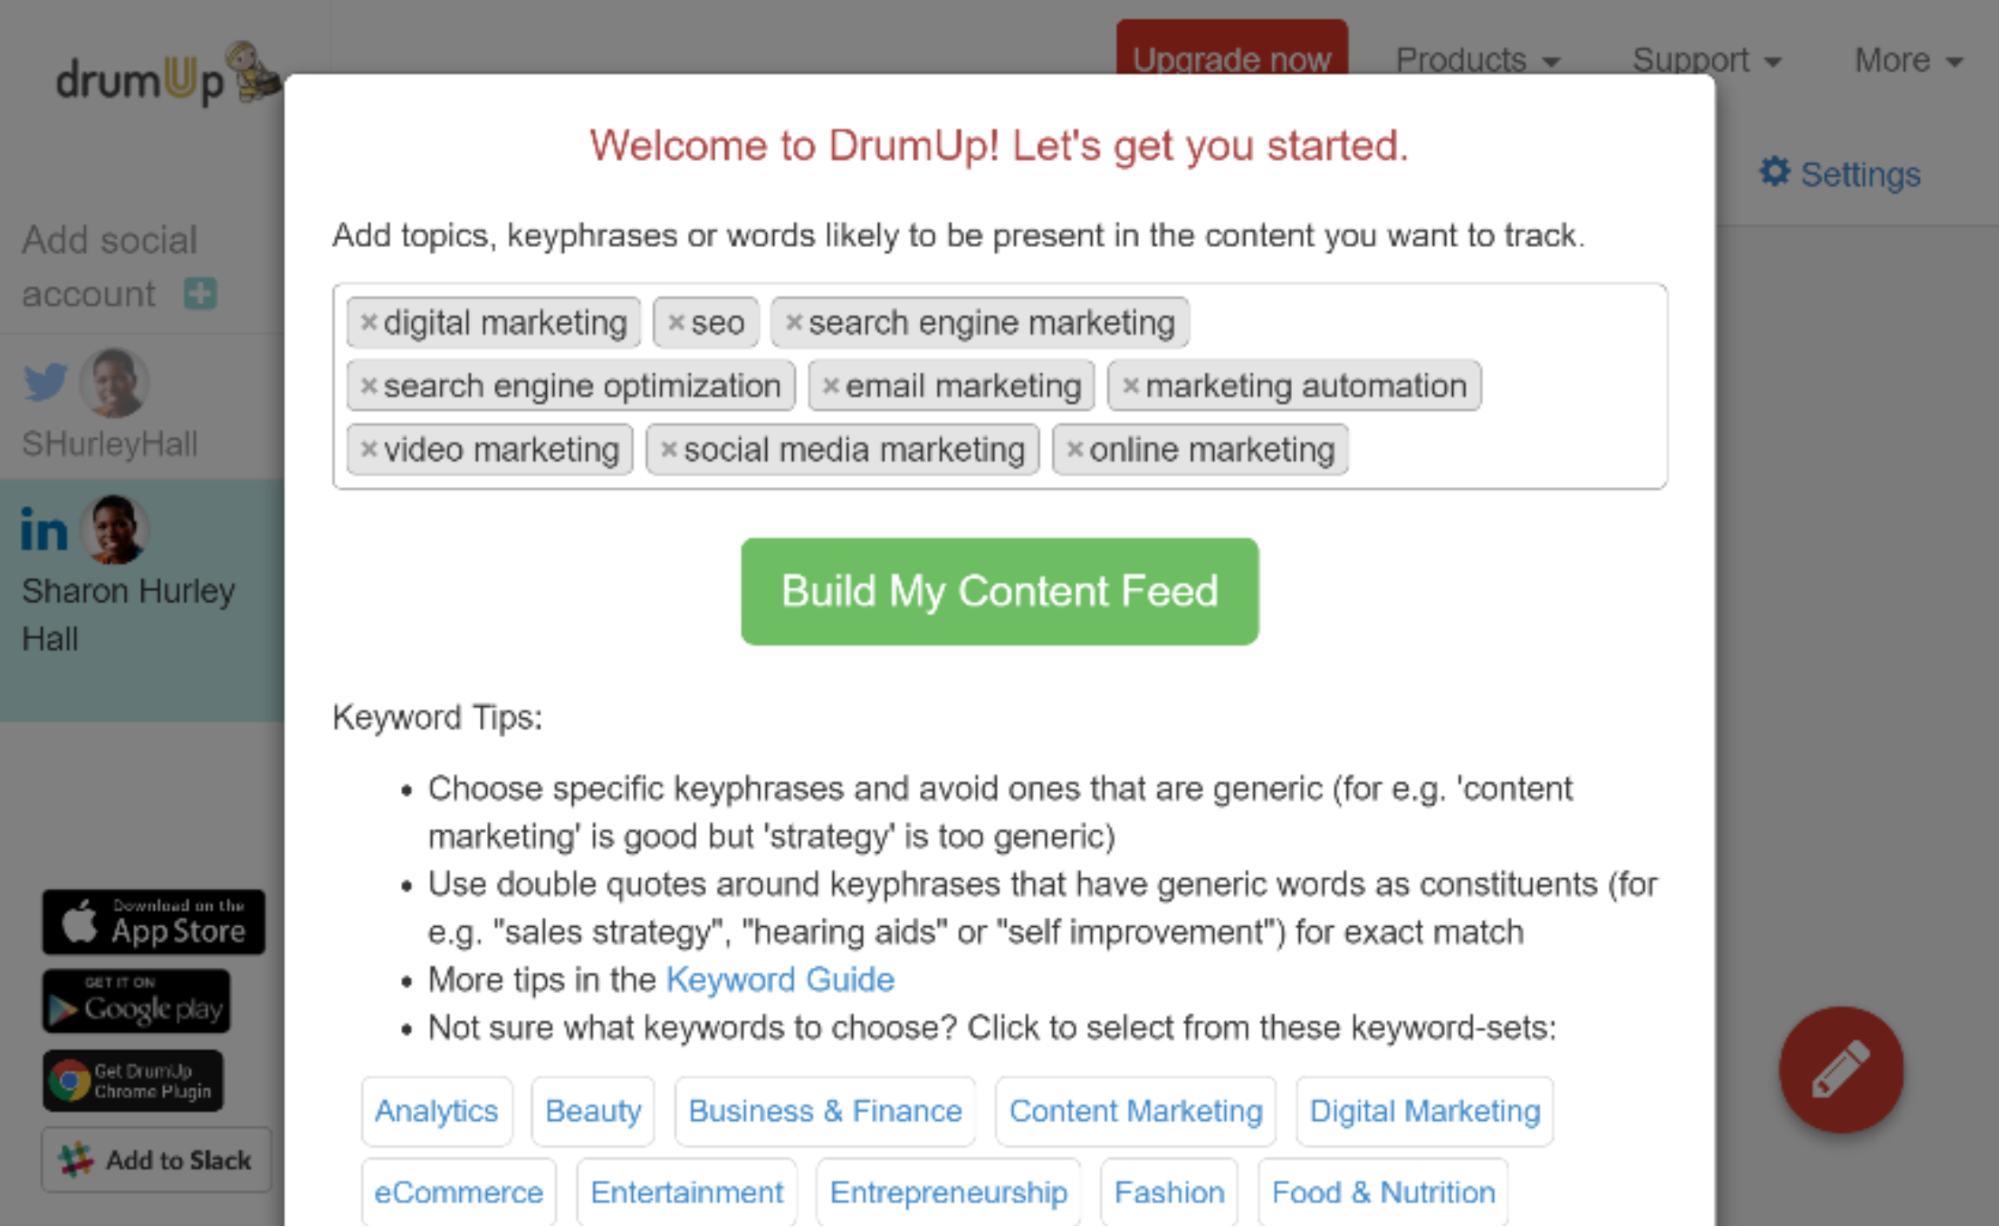 Build my content feed page on DrumUp